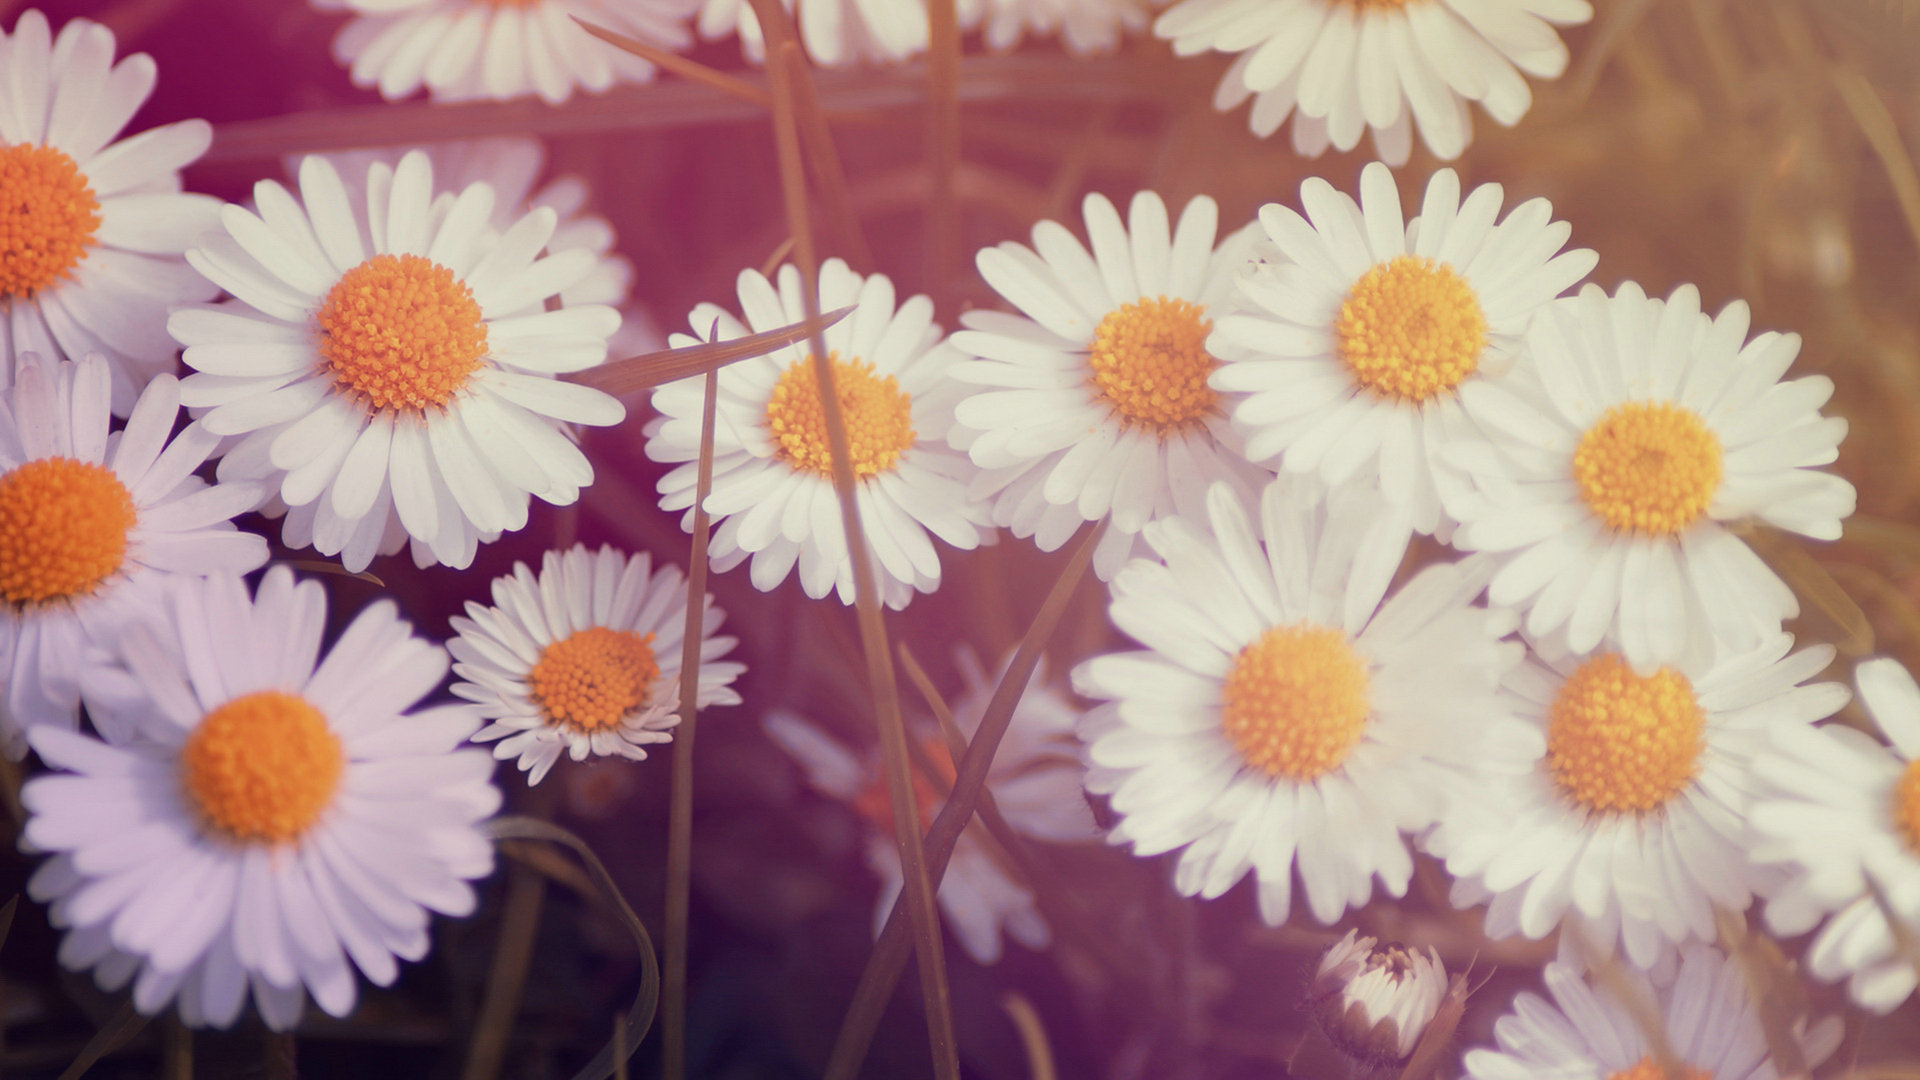 daisy flowers wallpaper